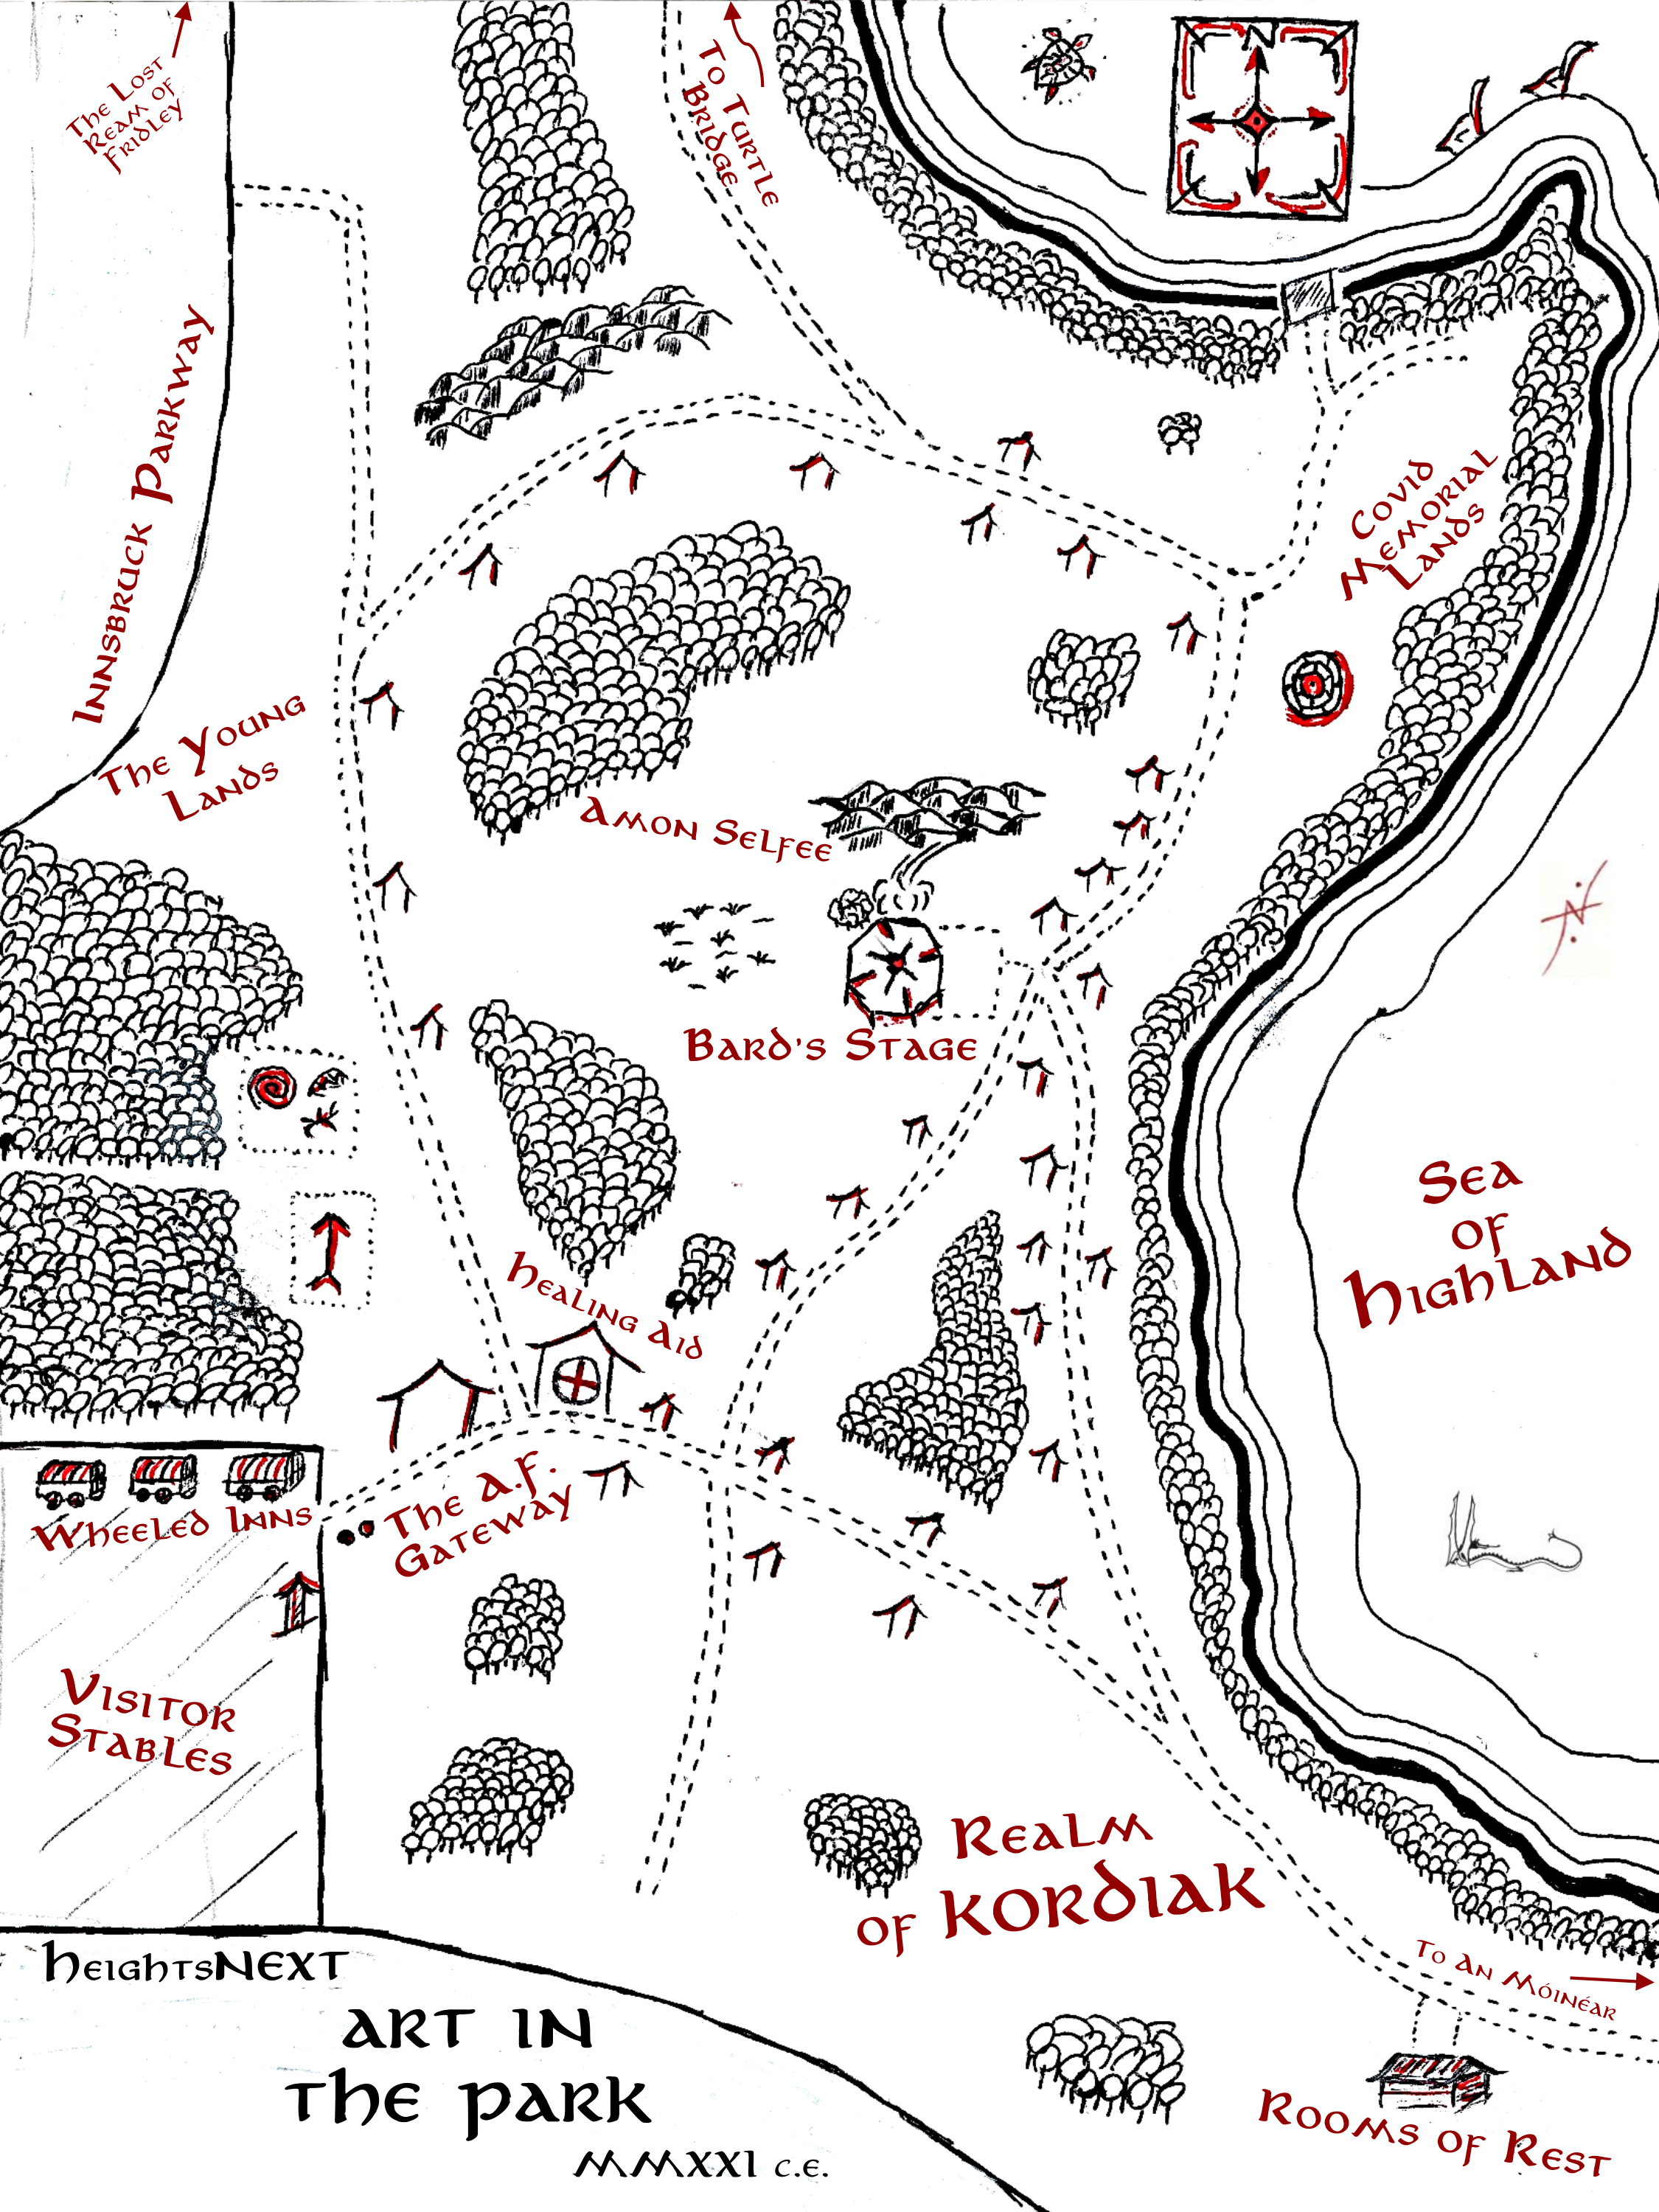 Art in the Park map of Kordiak Park in the style of Middle Earth